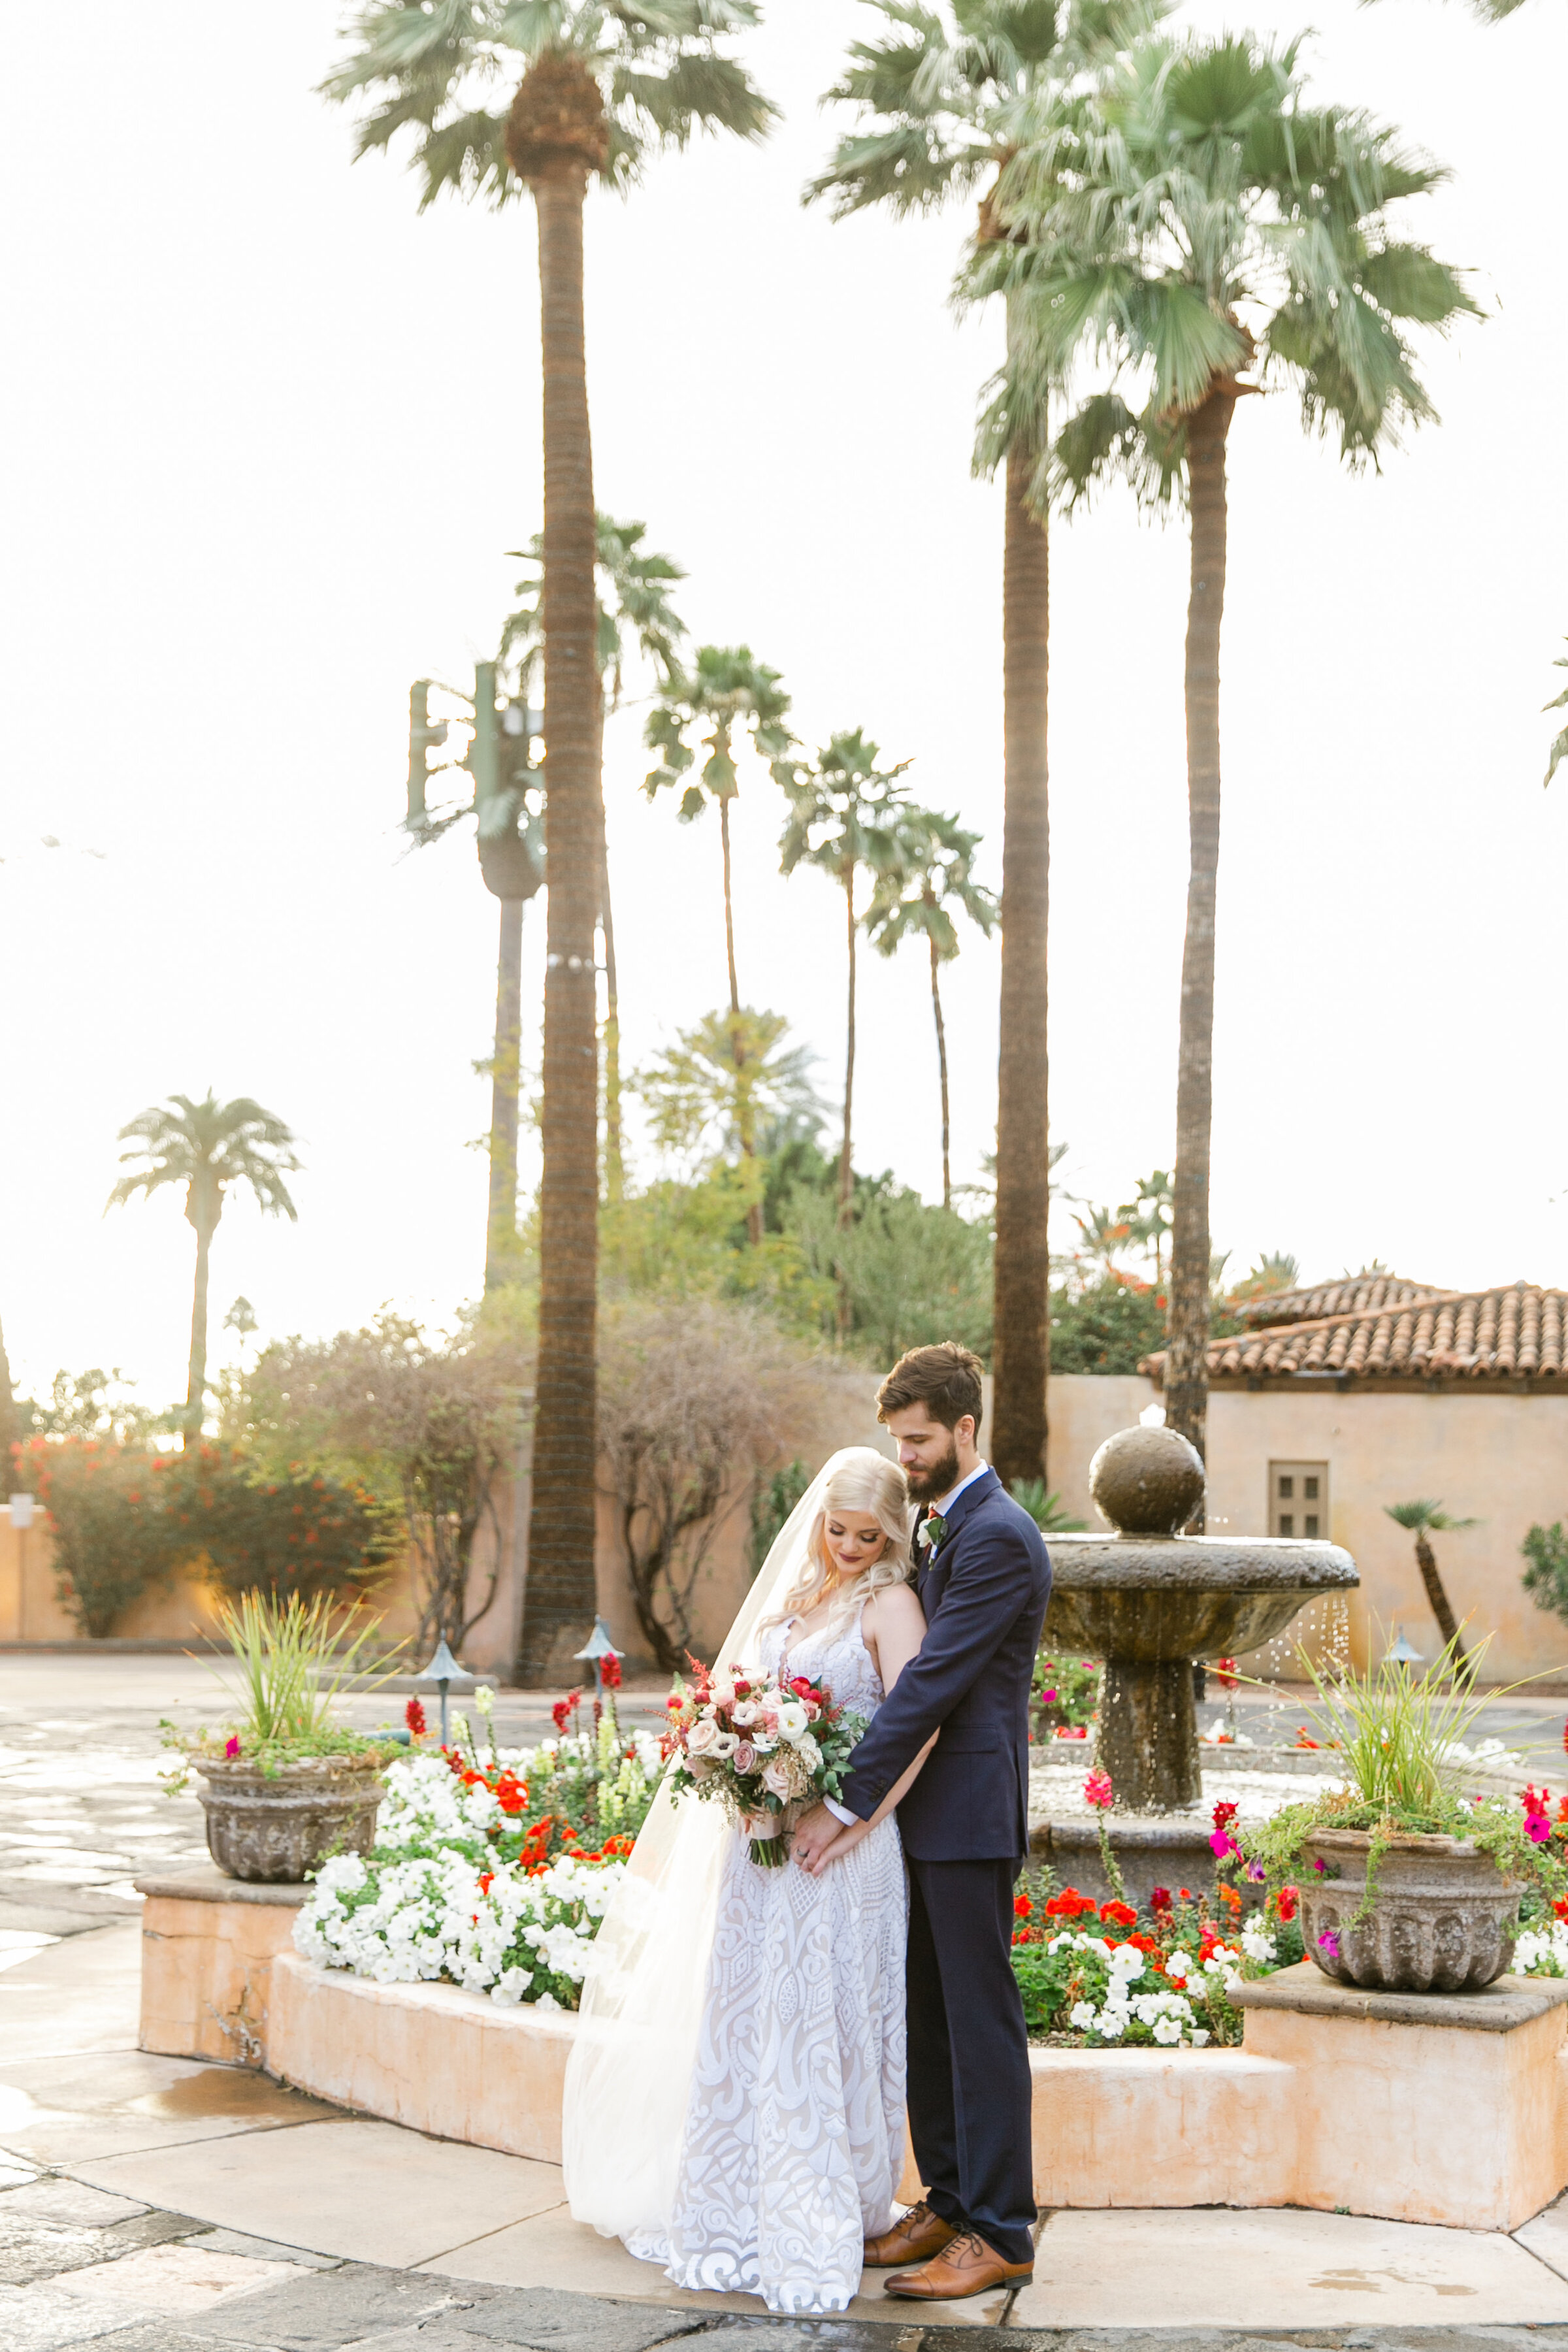 Karlie Colleen Photography - The Royal Palms Wedding - Some Like It Classic - Alex & Sam-541